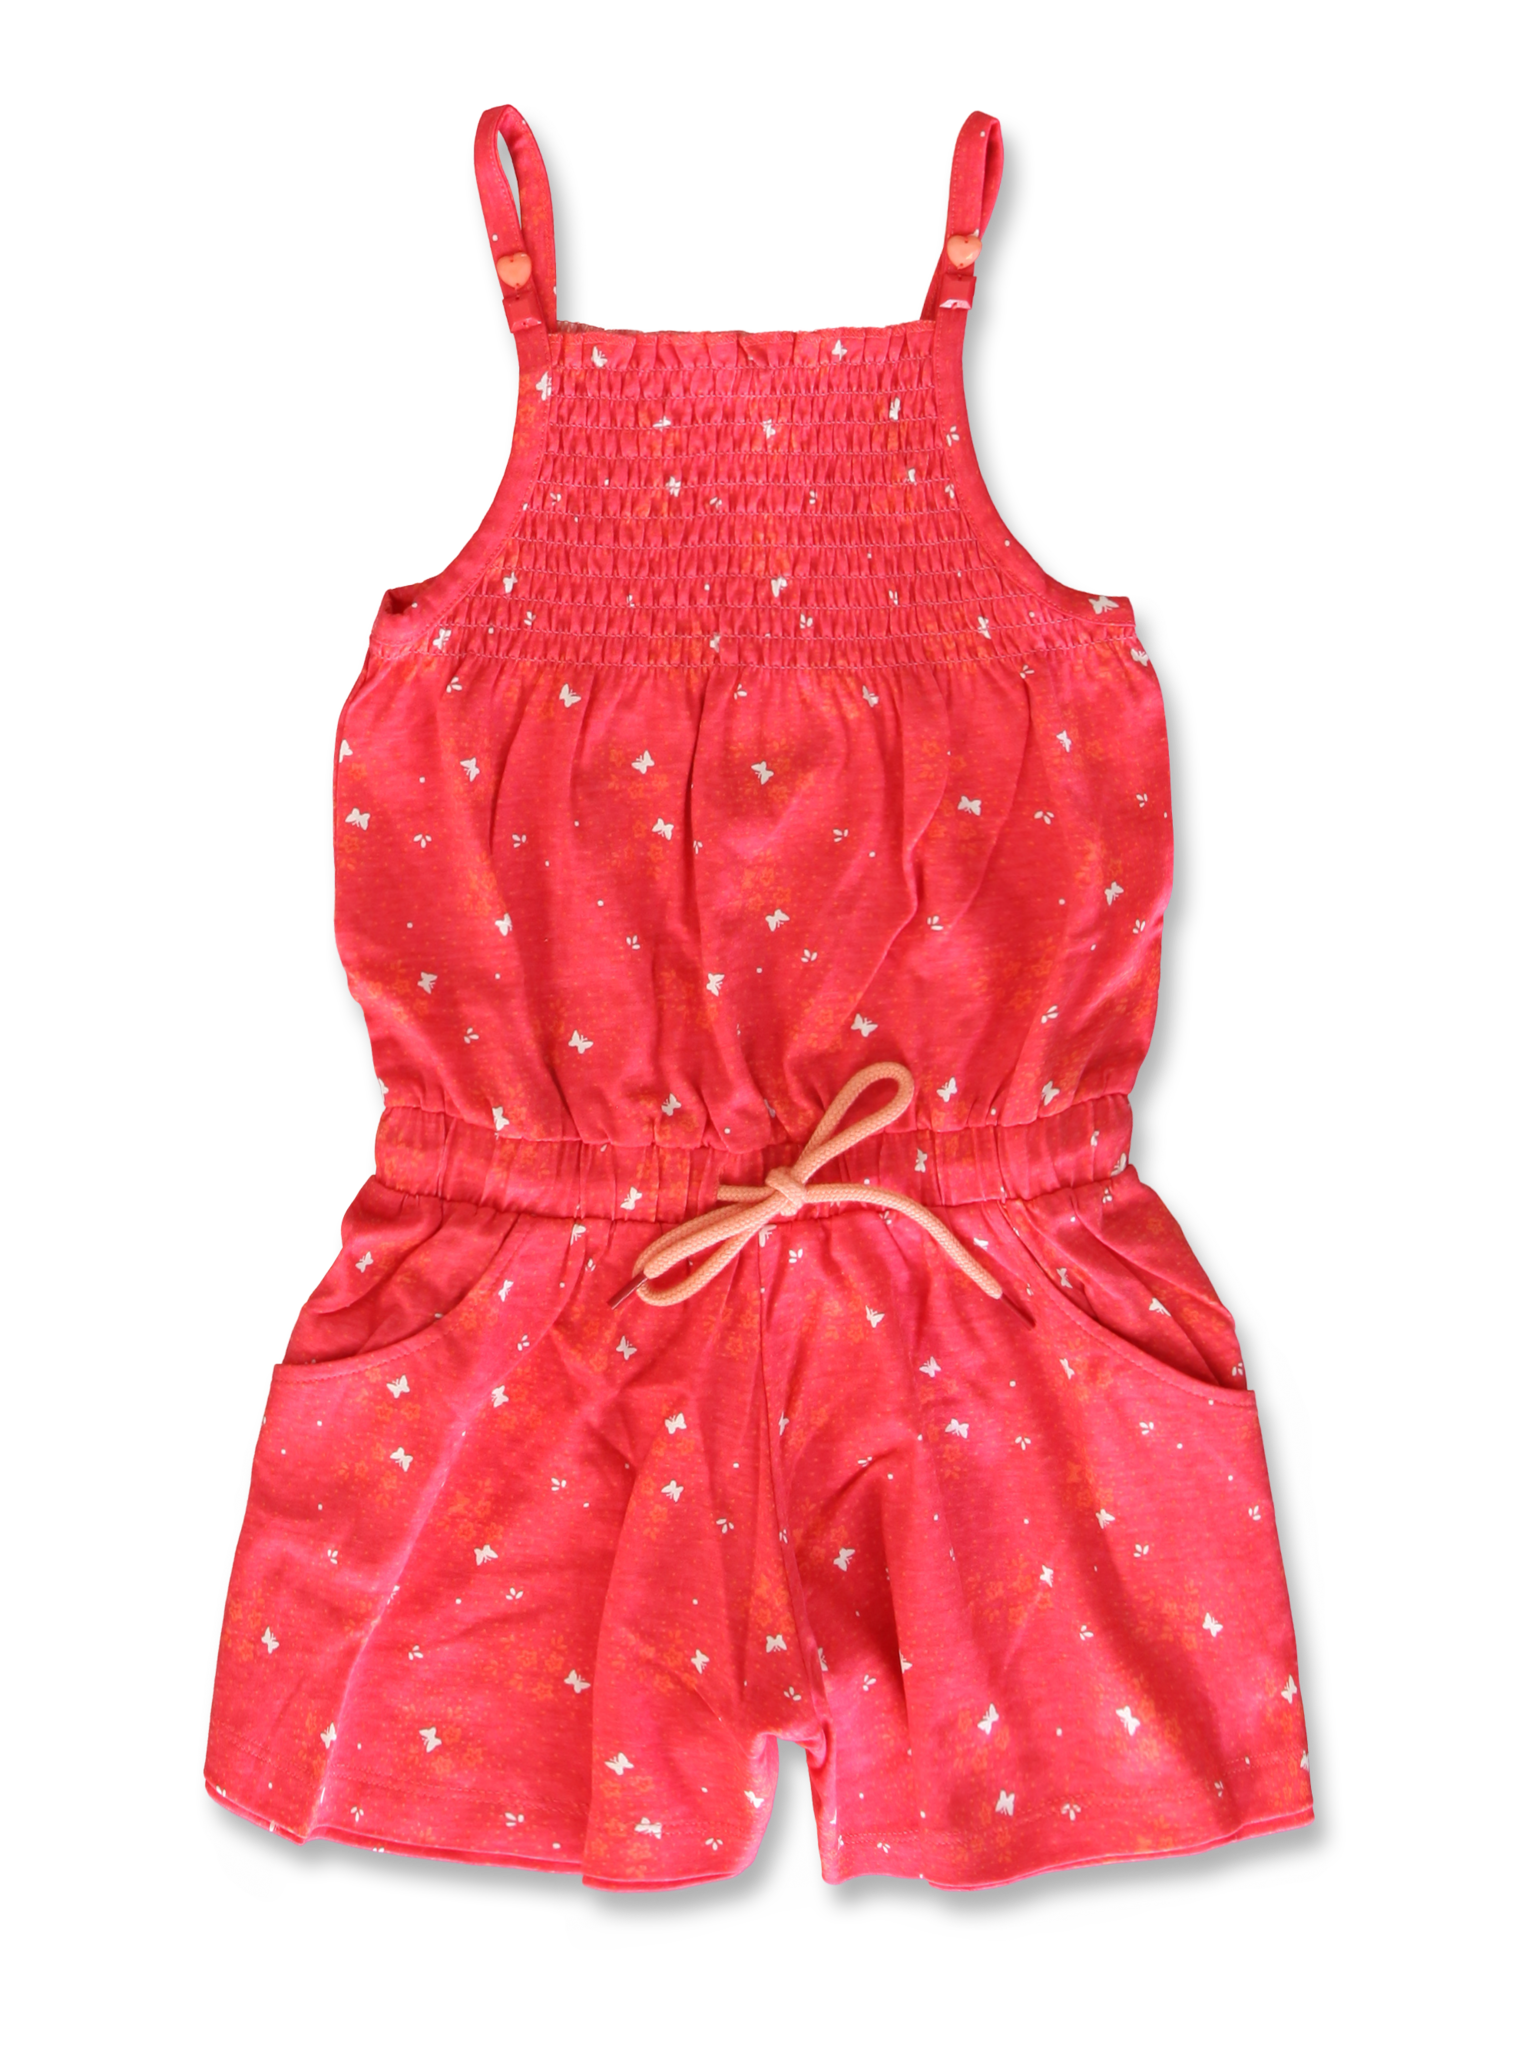 All Brands | Summerproducts Small Girls | Overall | 12 pcs/box